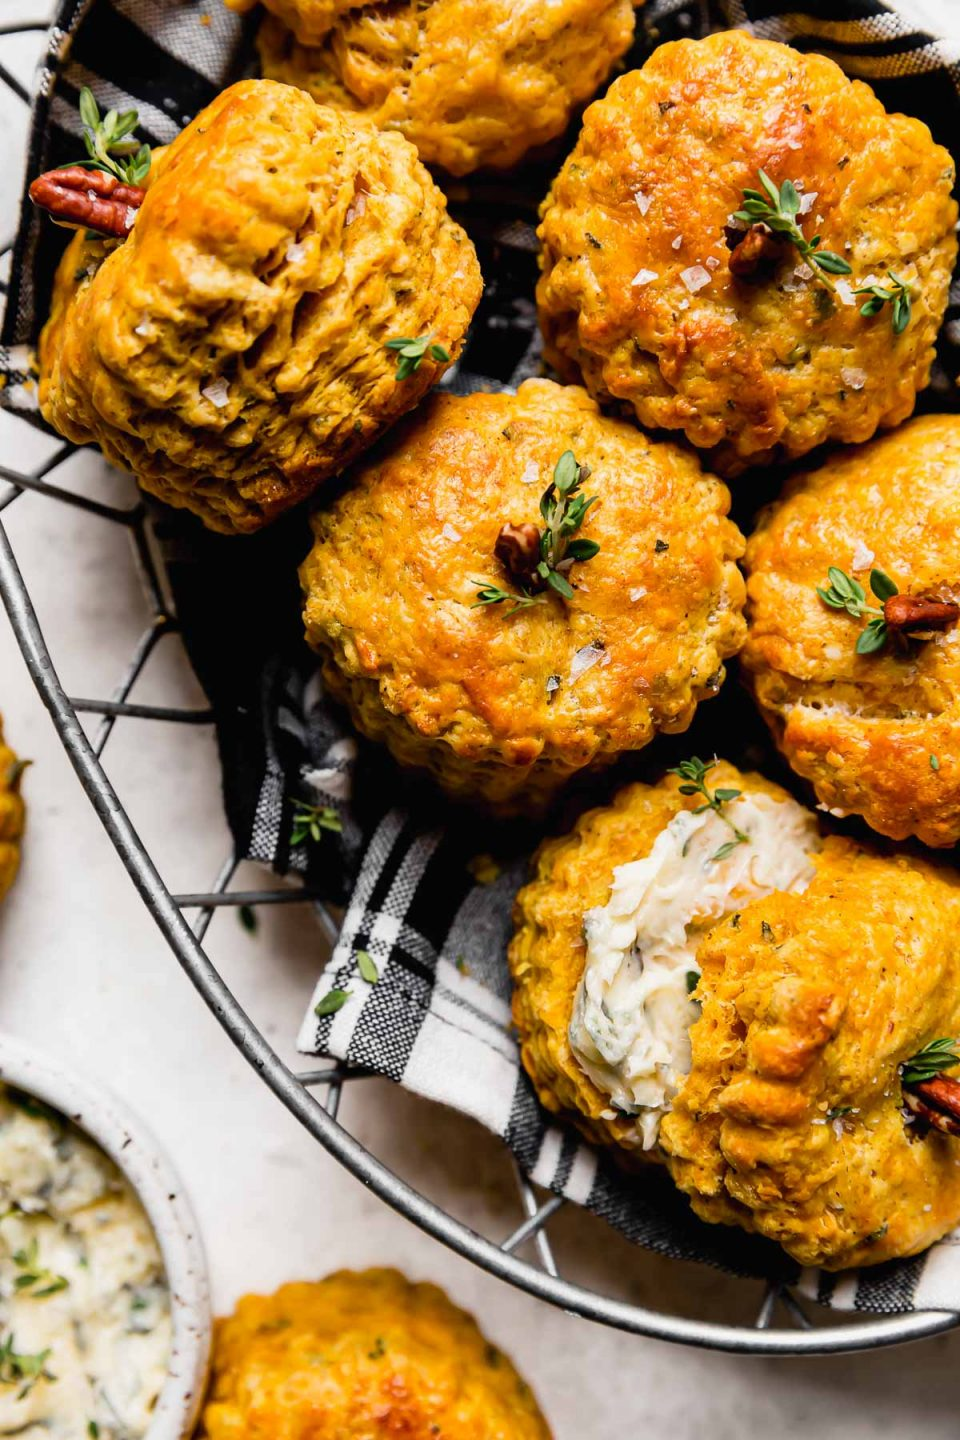 Pumpkin biscuits, decorated like pumpkins with a pecan & fresh herbs inserted into the tops, shown in a wire basket lined with a black plaid napkin. The basket sits atop a white surface next to a small ceramic bowl with garlic herb butter.